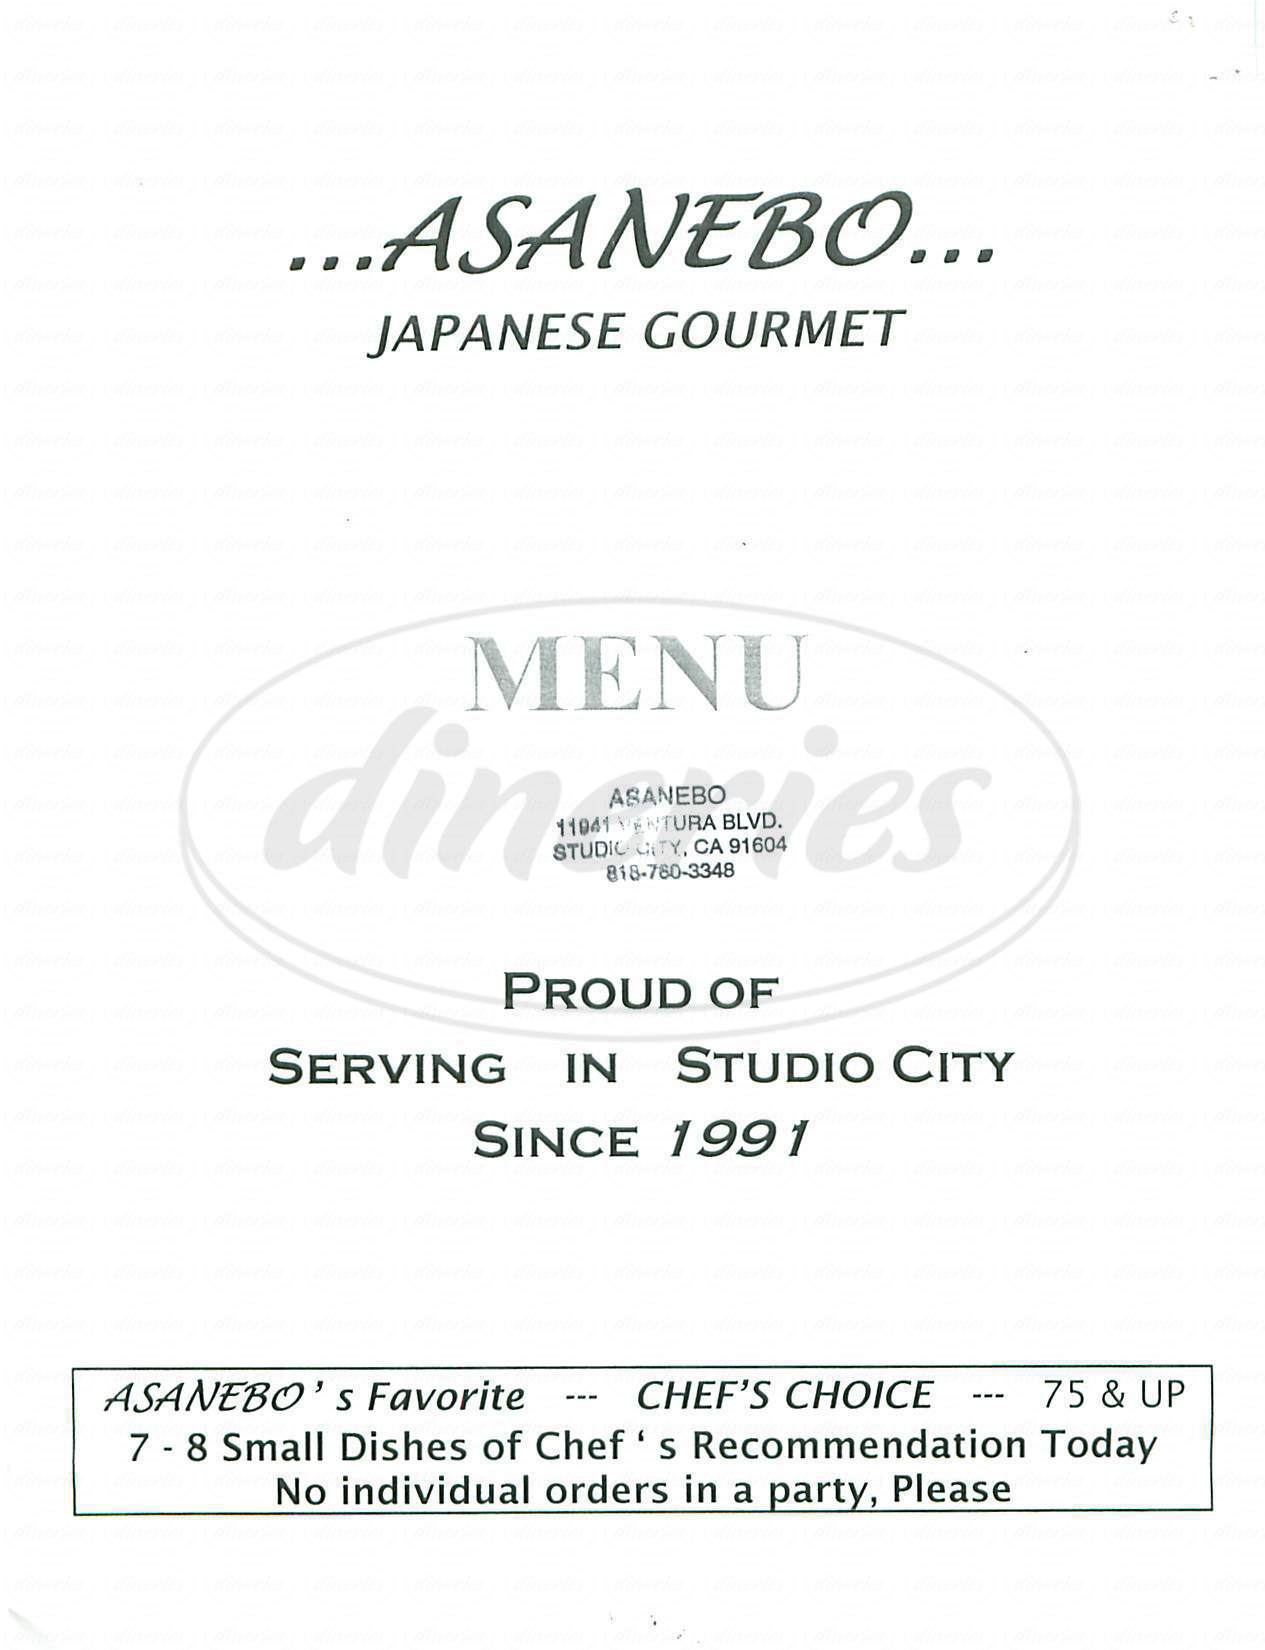 menu for Asanebo Japanese Gourmet